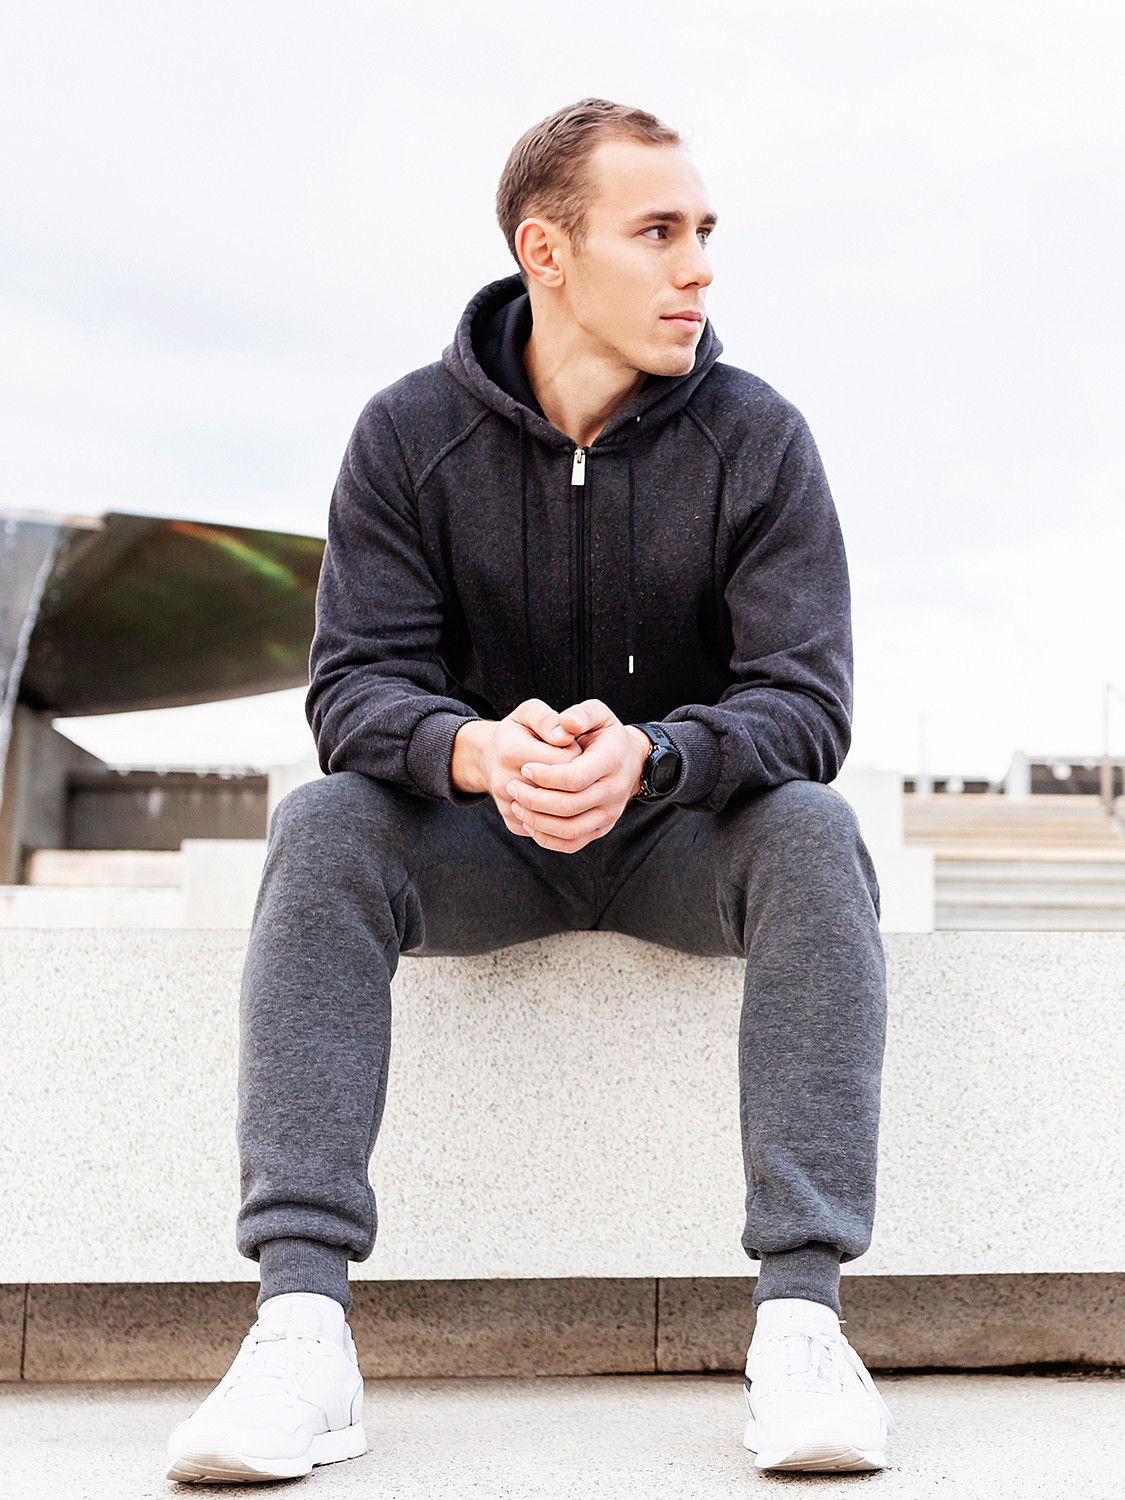 Men's outfit idea for 2021 with gray hoodie, white crew neck t-shirt, grey sweatpants, white sneakers. Suitable for spring, summer, fall and winter.